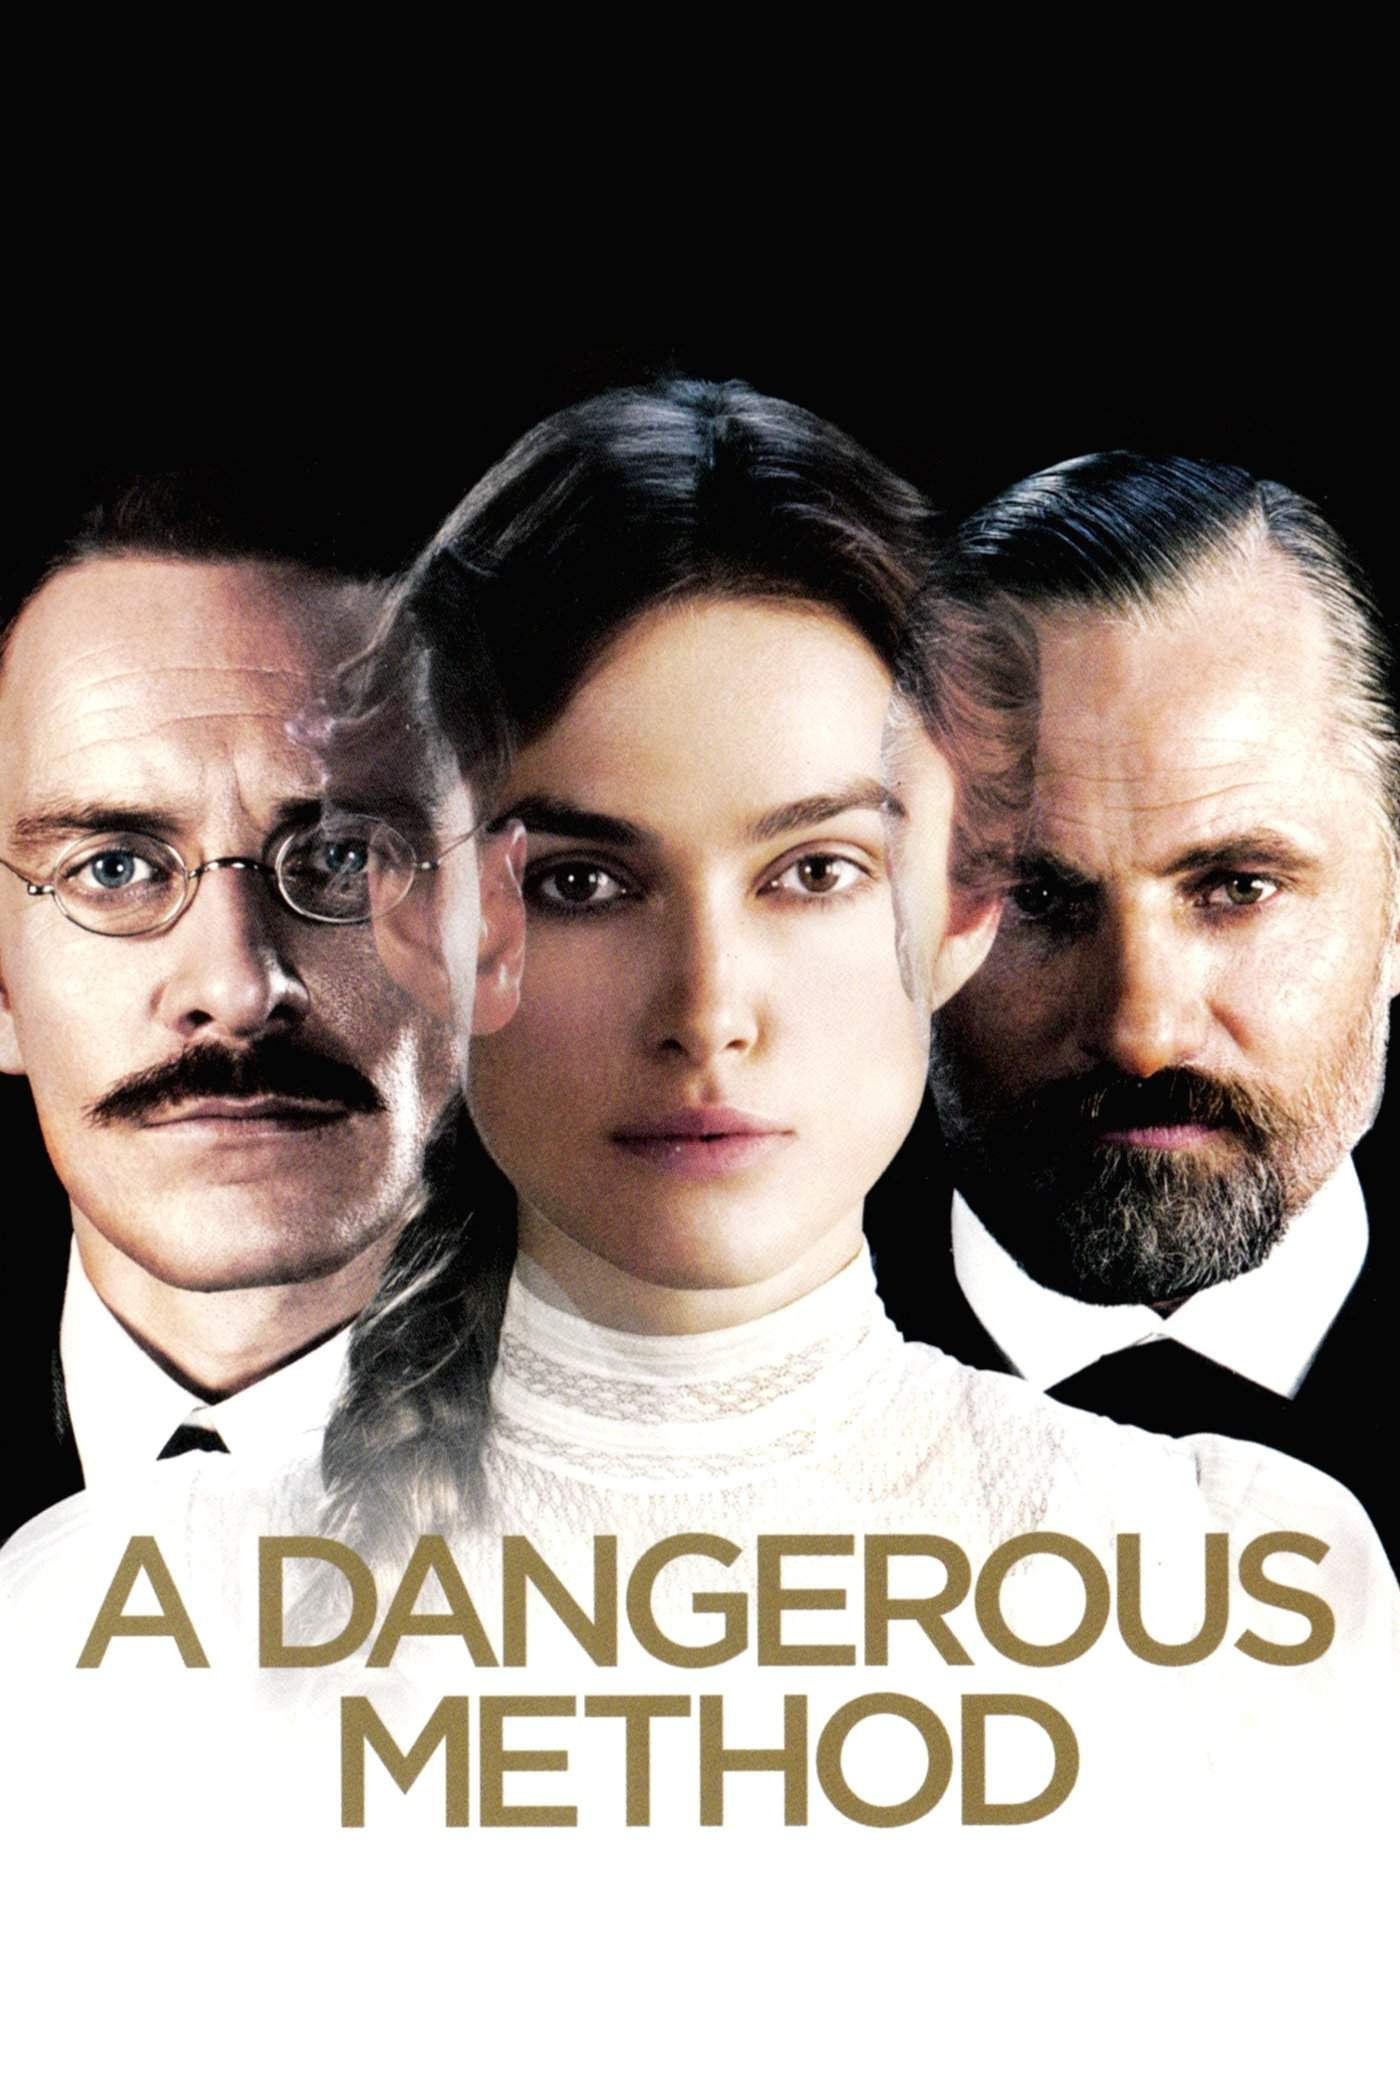 A Dangerous Method, 2011